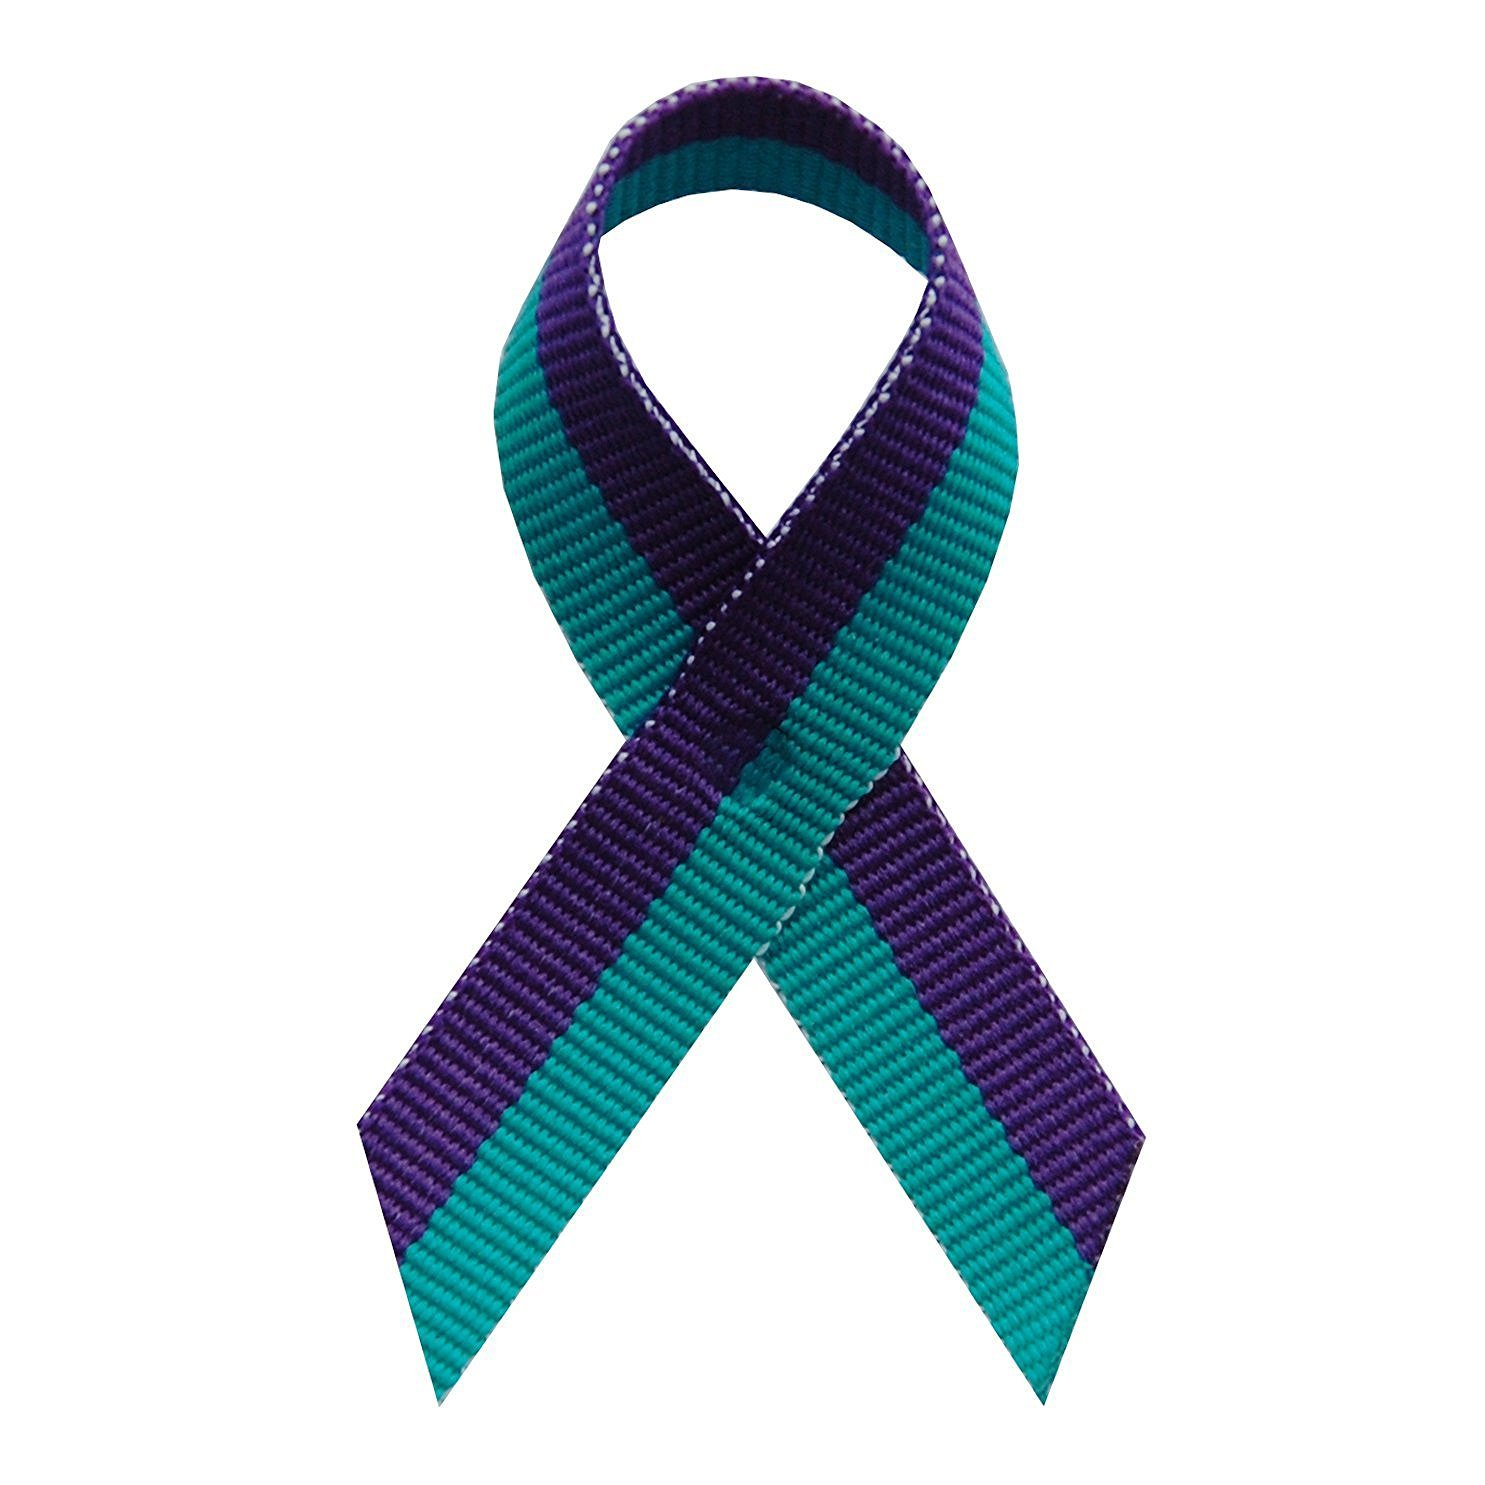 250 USA Made Suicide Prevention Awareness Ribbons - Bag of 250 Lapel Ribbons with Safety Pins (Many Colors Available) by The Ribbon Factory